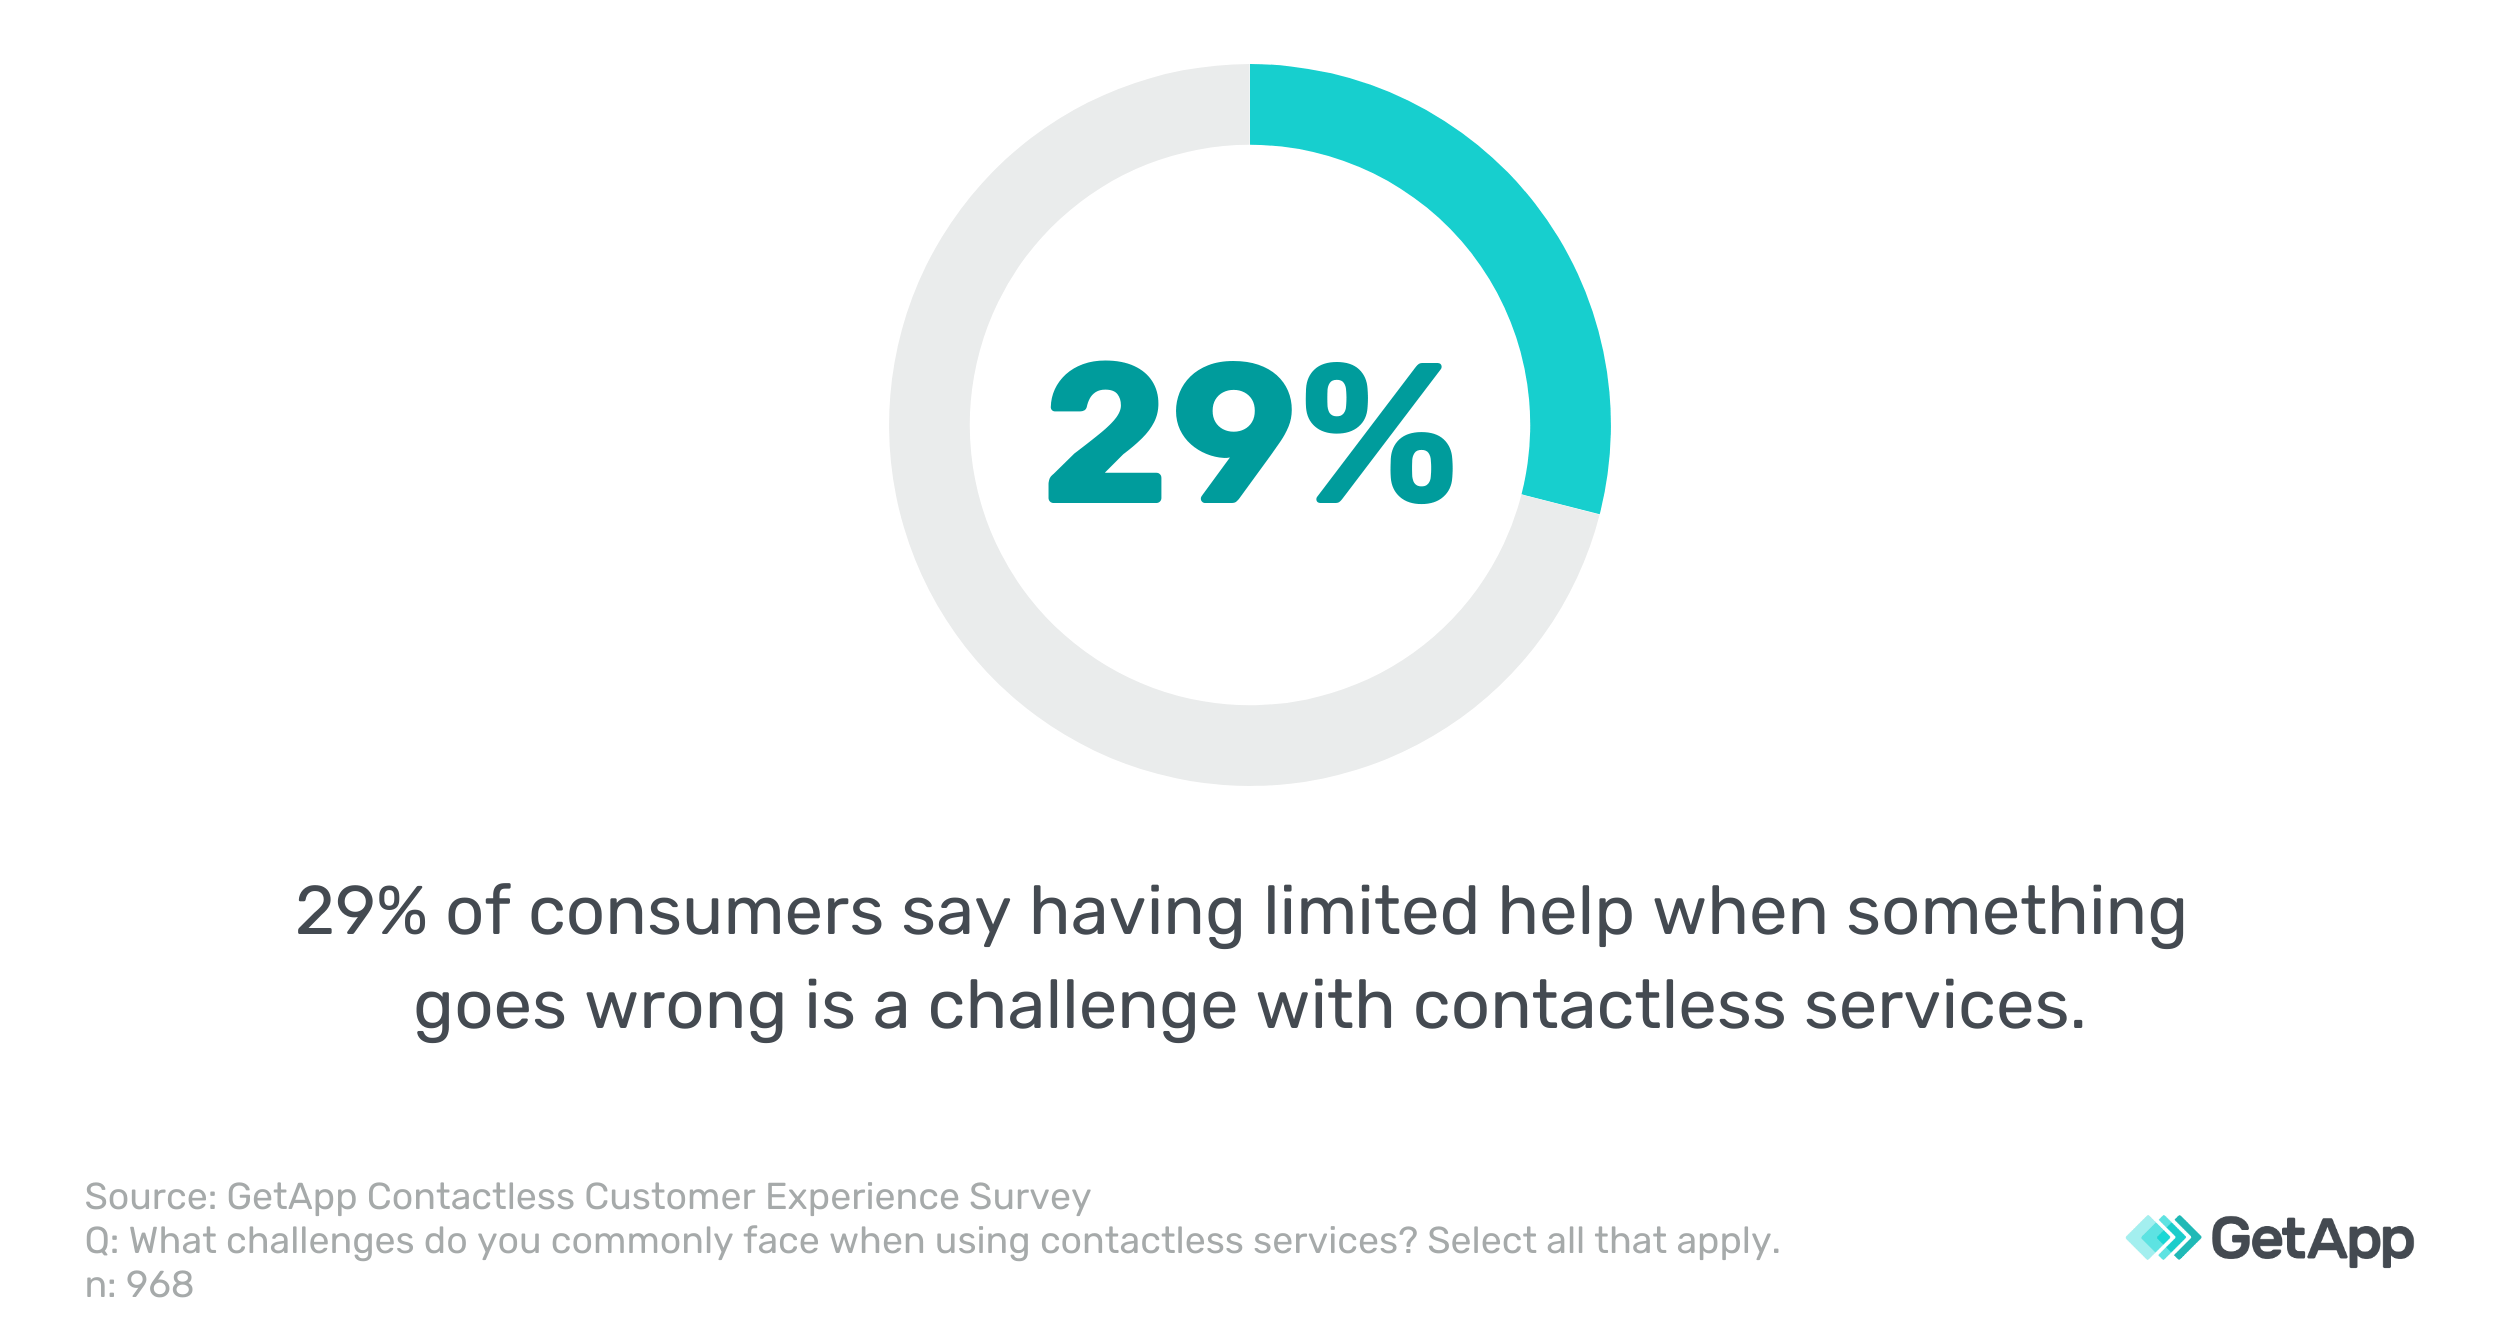 graphic states that 29 percent of consumers say that limited options for help is a challenge of contactless services